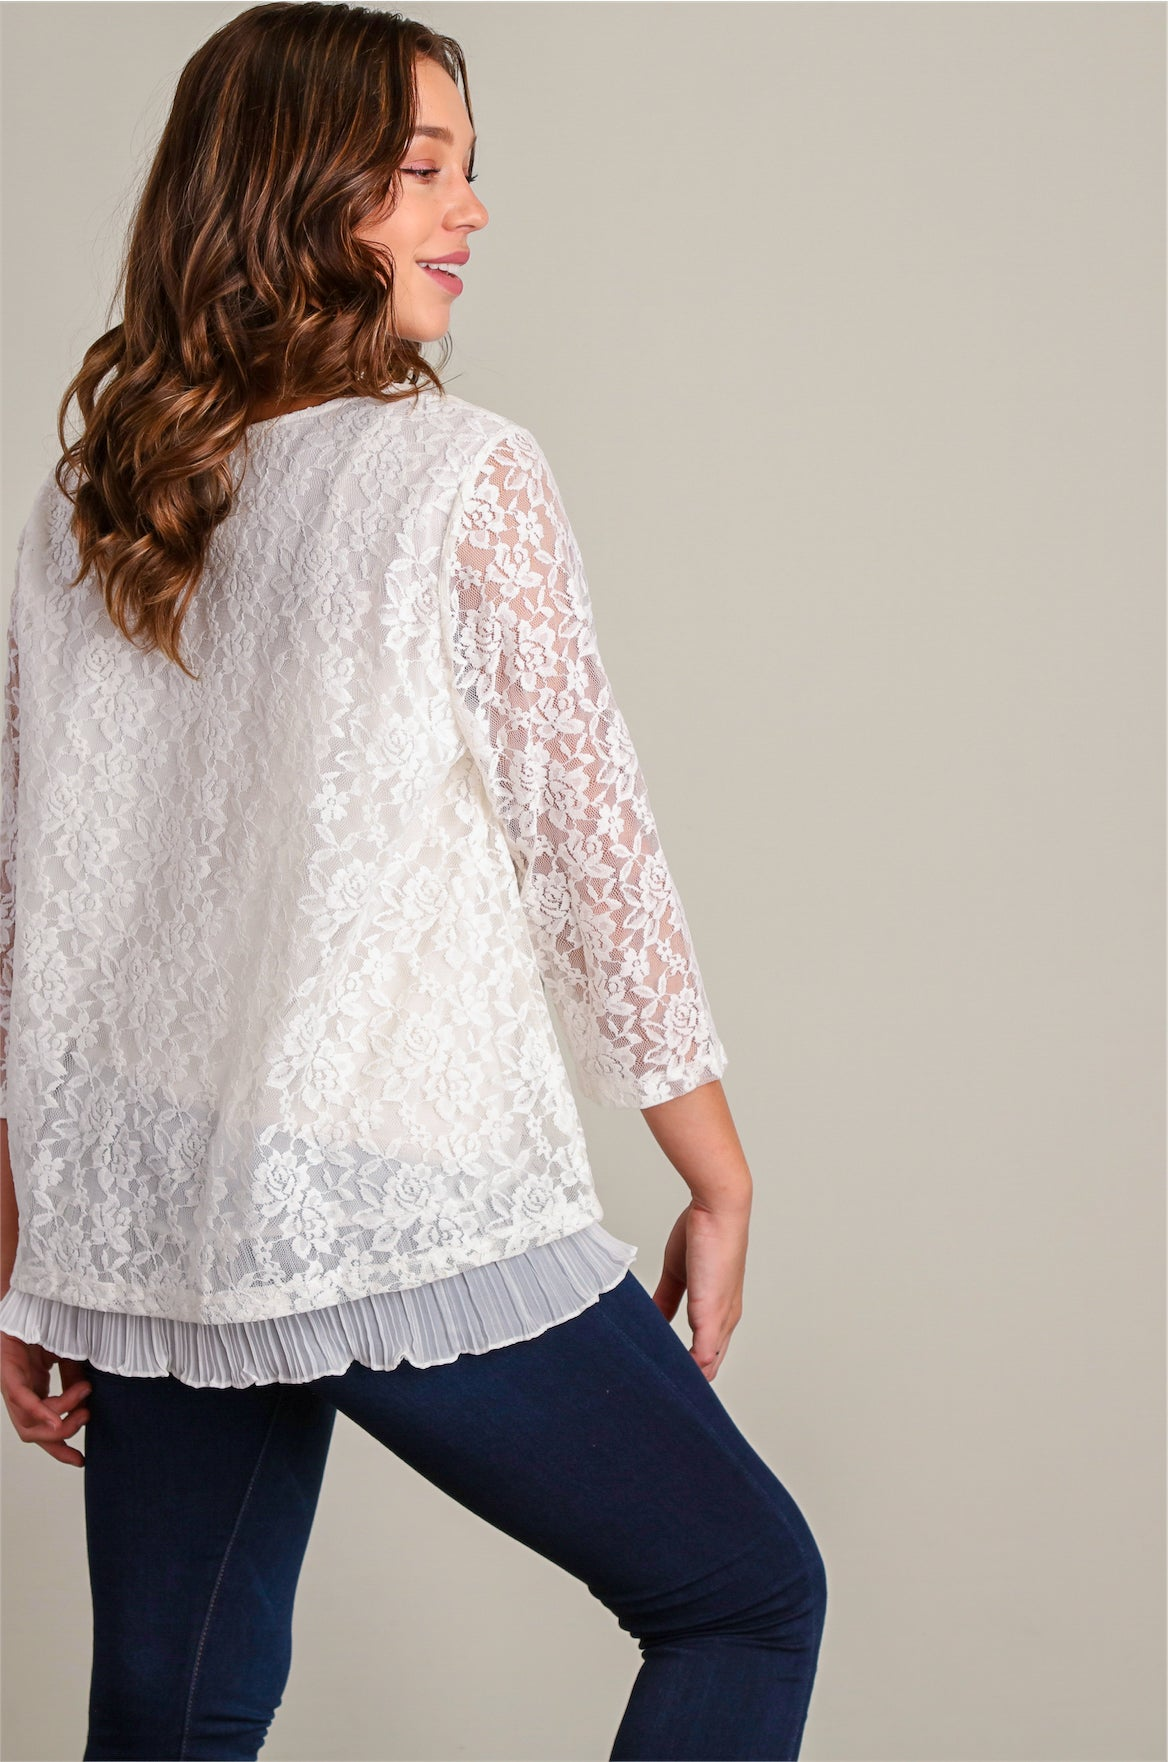 Plus White Lace And Pearl Dressy Blouse Forgottengraceonline